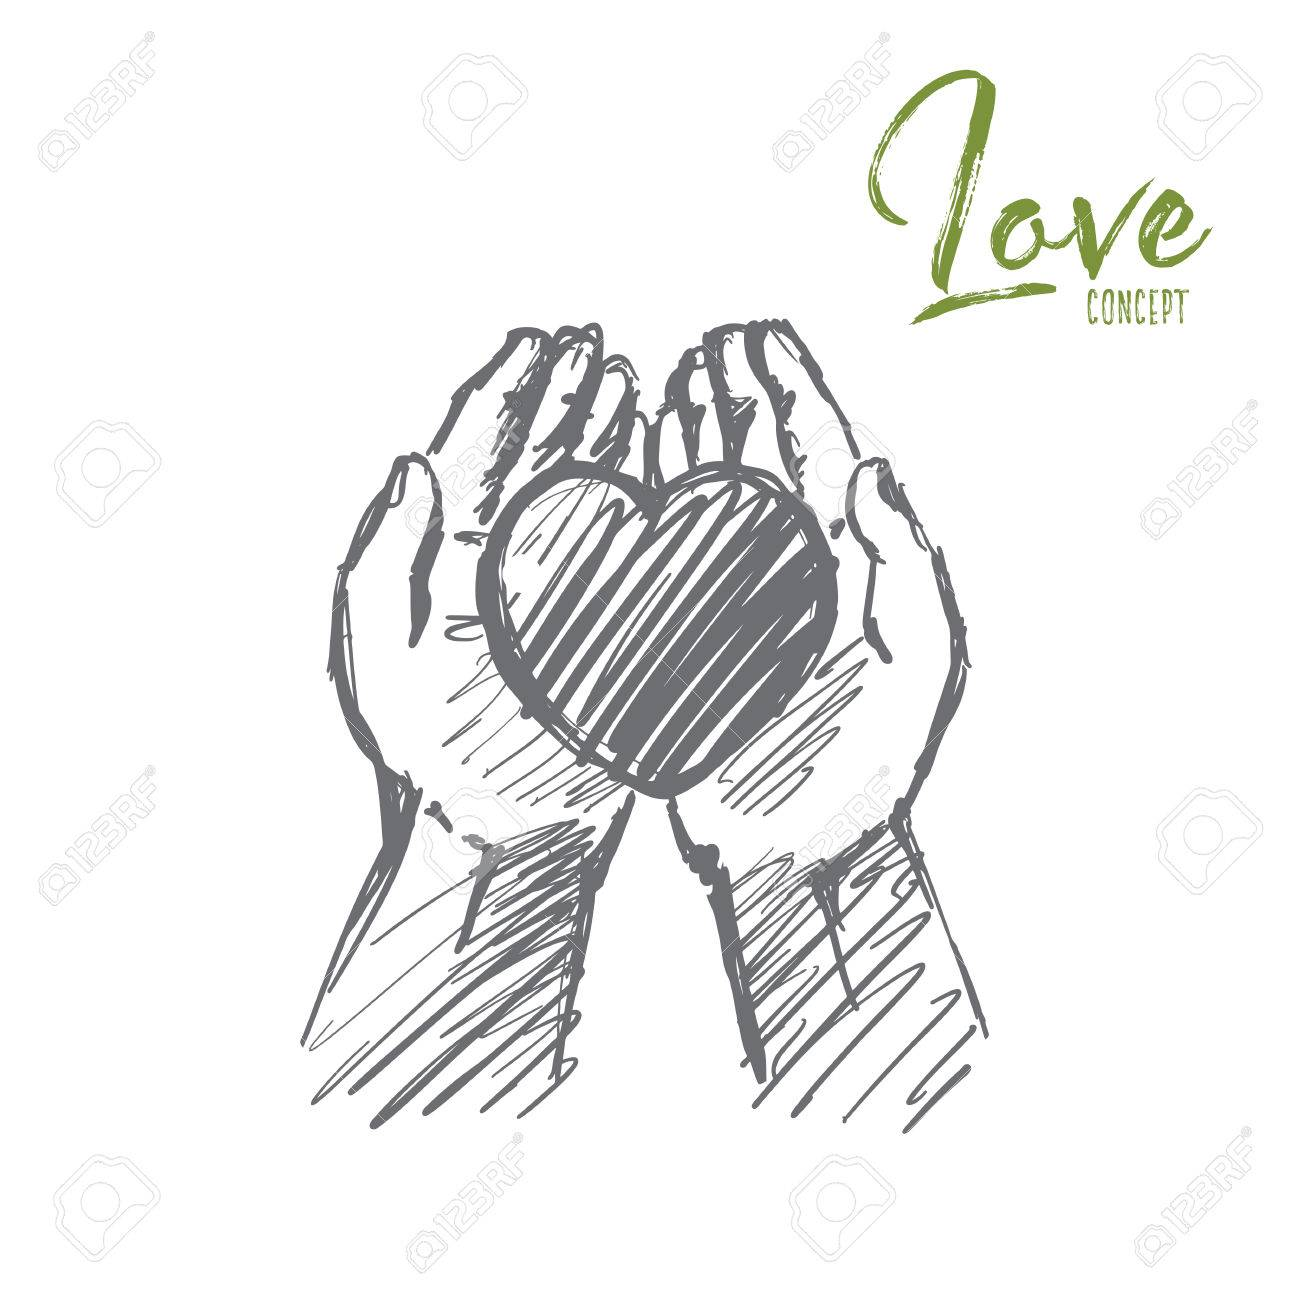 1300x1300 Vector Hand Drawn Love Concept Sketch. Heart In Caring Human